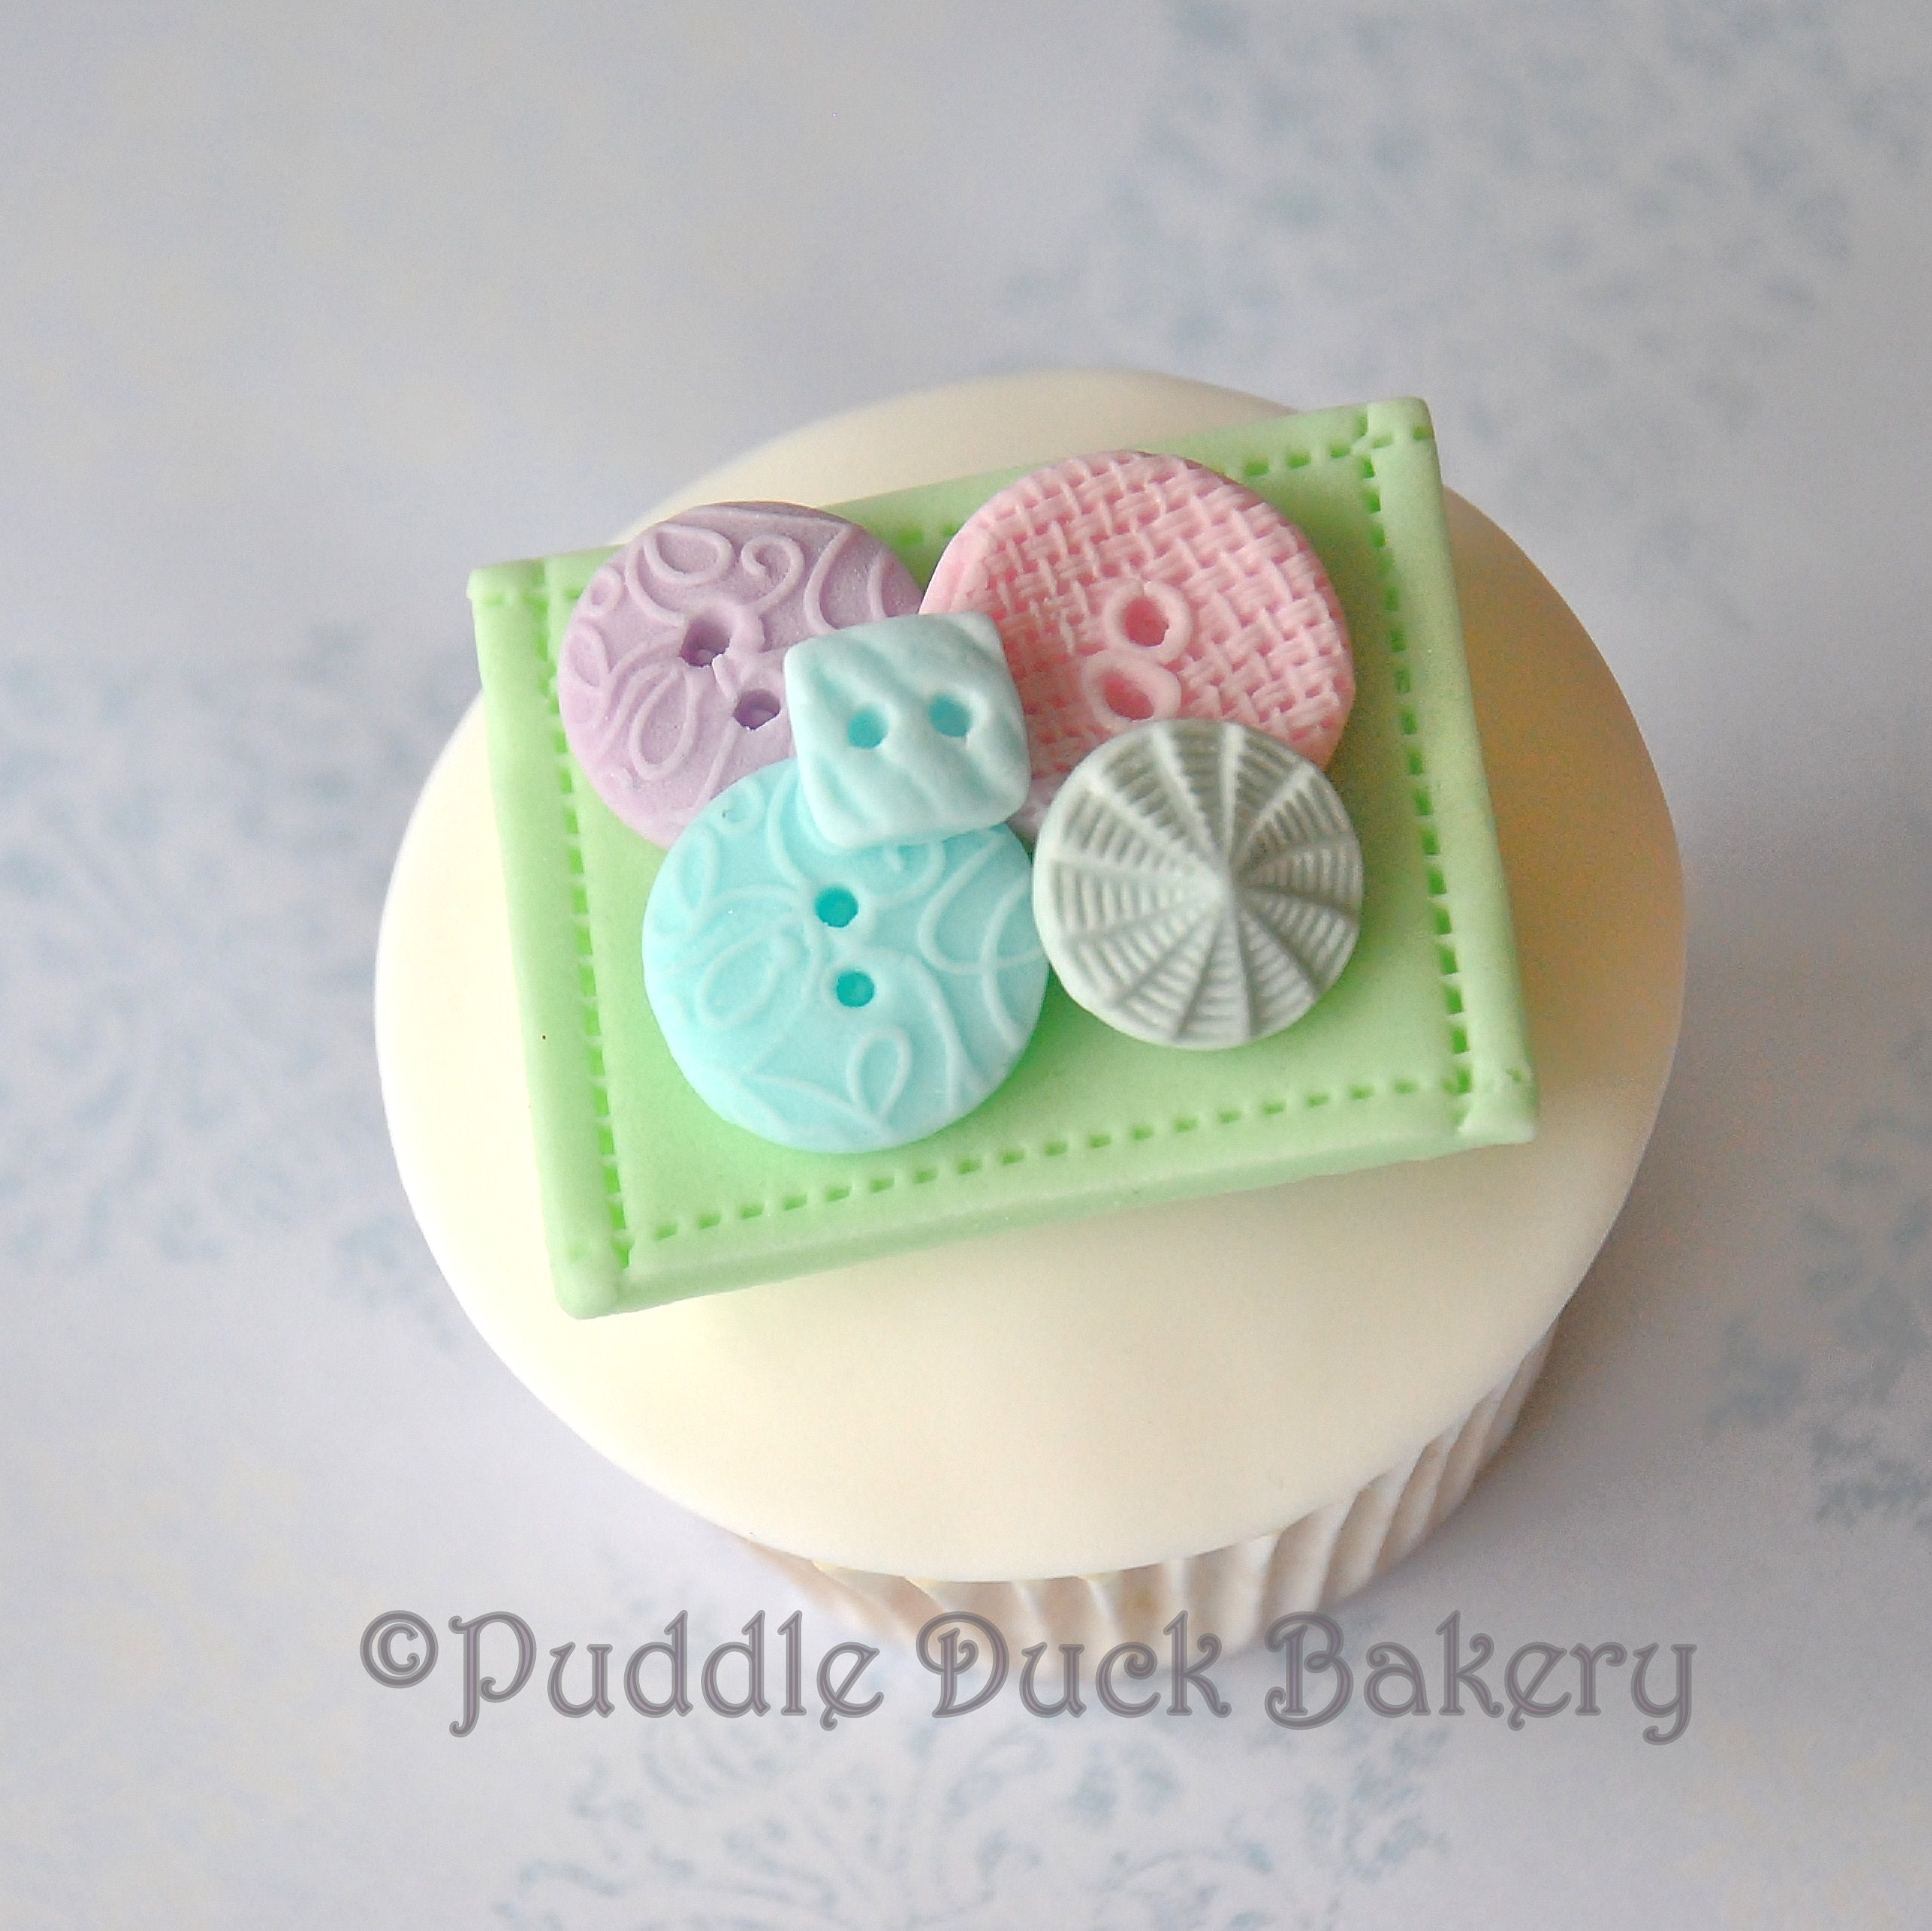 Textured buttons on a cupcake